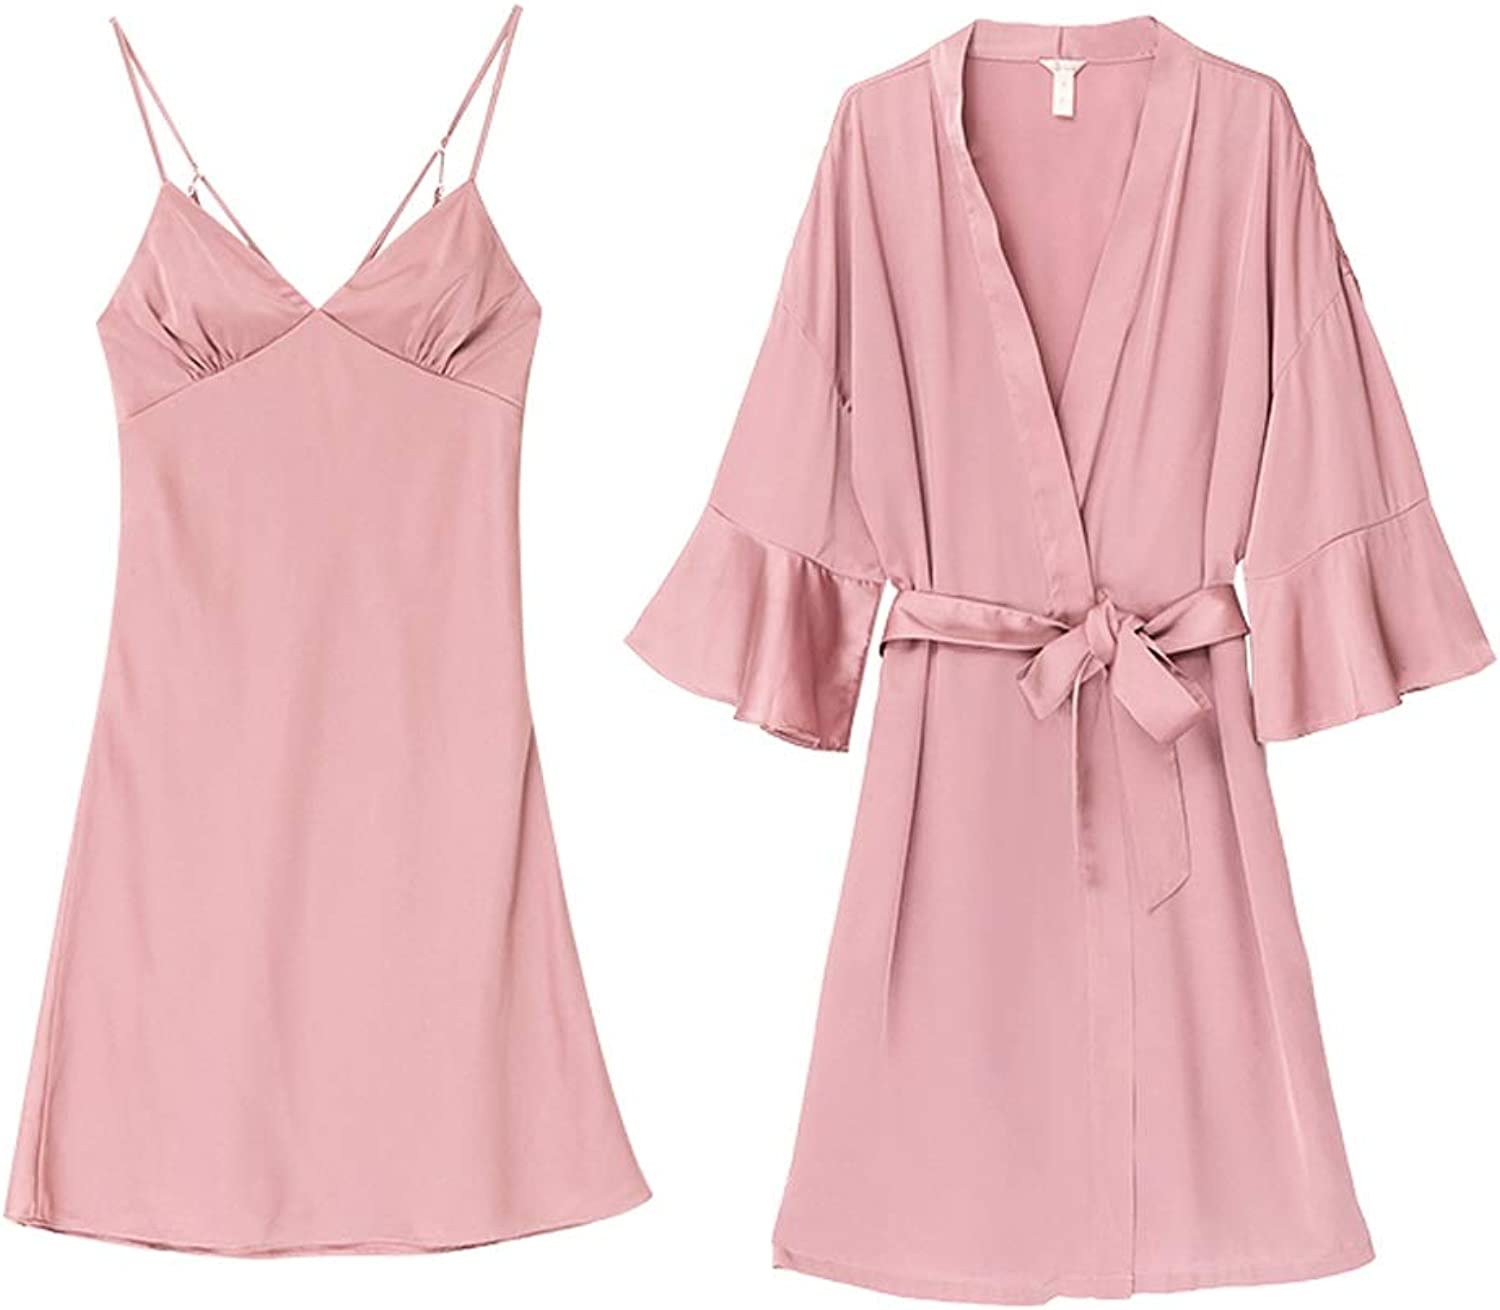 Home Service Women Sexy Silk Nightgown TwoPiece Drop Shoulder Bath Strap Nightdress (color   Pink, Size   S)